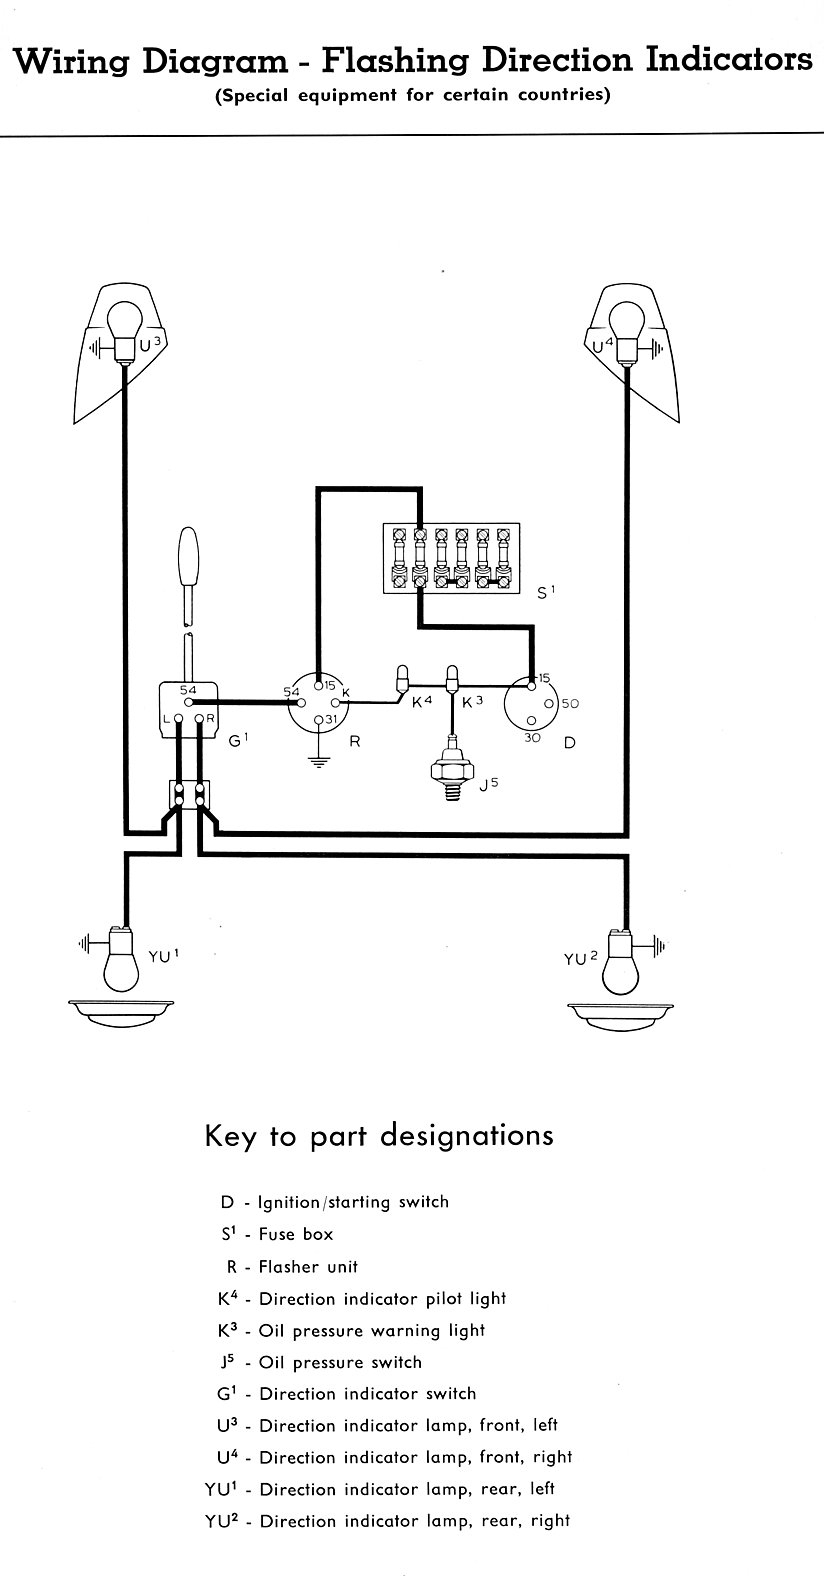 Turn Signal Wiring Diagram - Schema Wiring Diagram - Turn Signal Switch Wiring Diagram